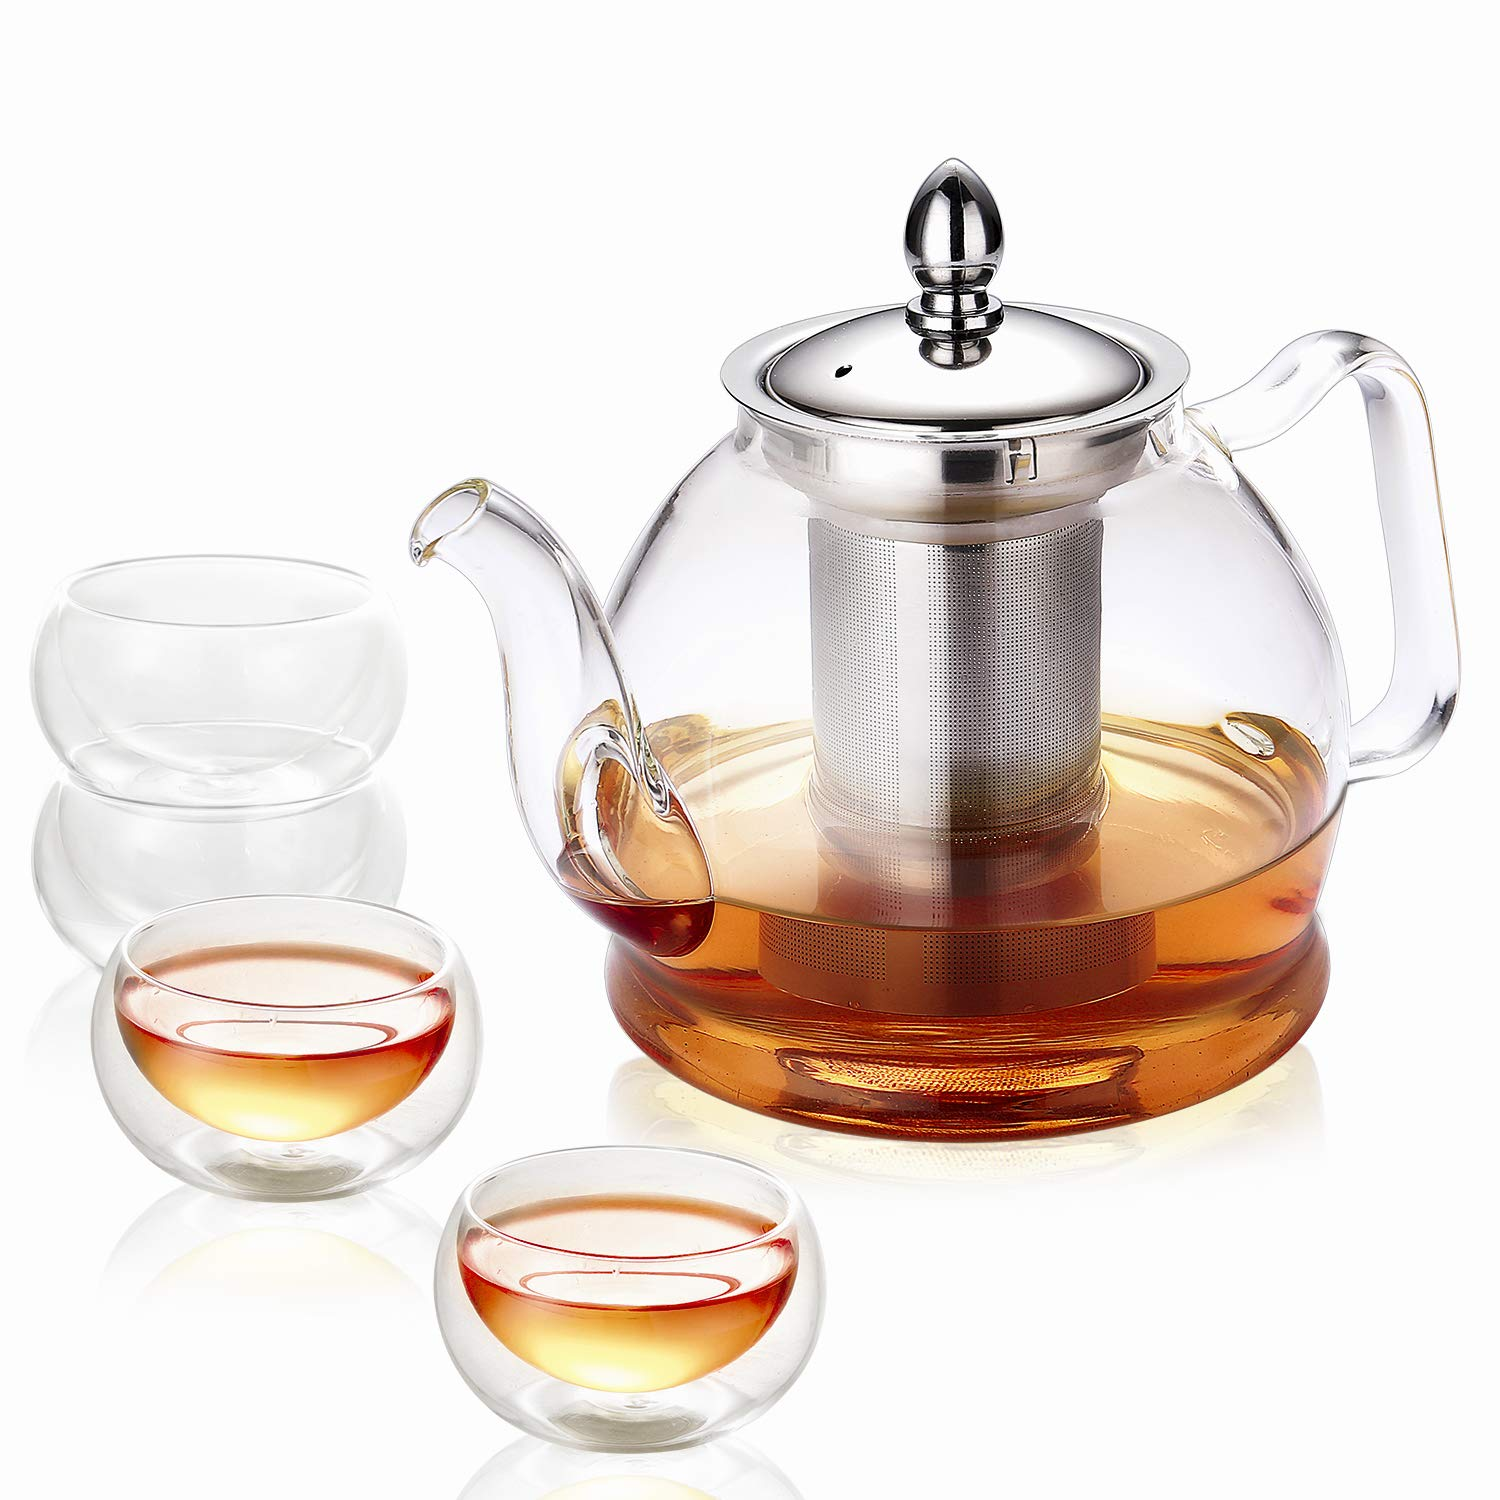 Hiware Teapot Set, 35 Oz Glass Teapot with Removable Infuser and Cups, Stovetop Safe Tea Kettle, Blooming and Loose Leaf Tea Maker Set